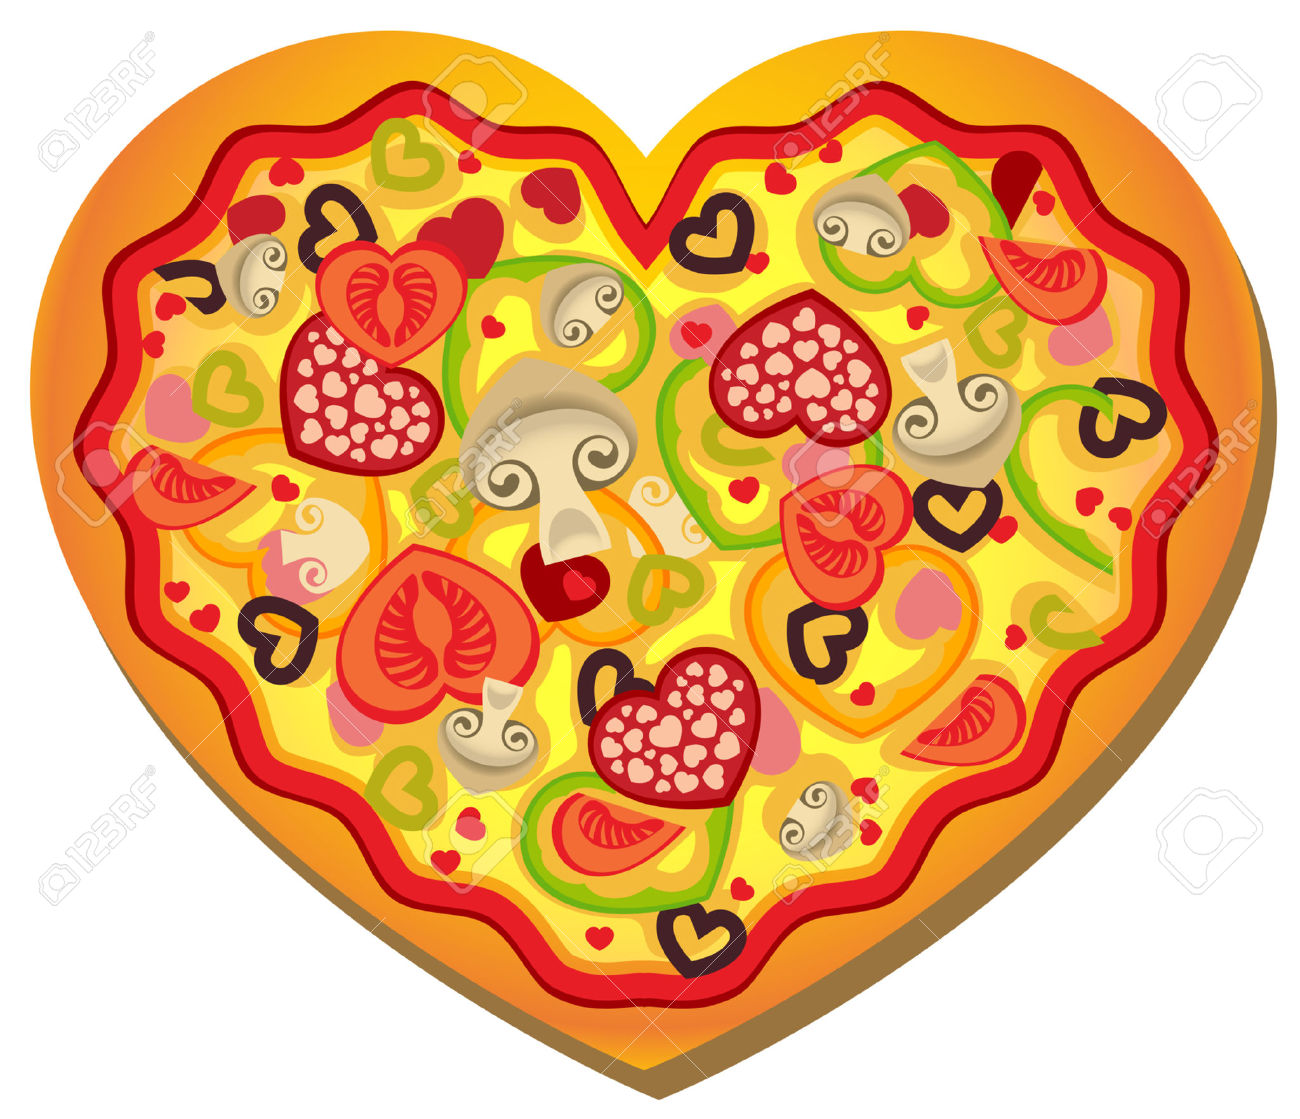 pizza clipart free clipart panda free clipart images rh clipartpanda com clipart of pizza chiena easter bread clipart of pizza toppings